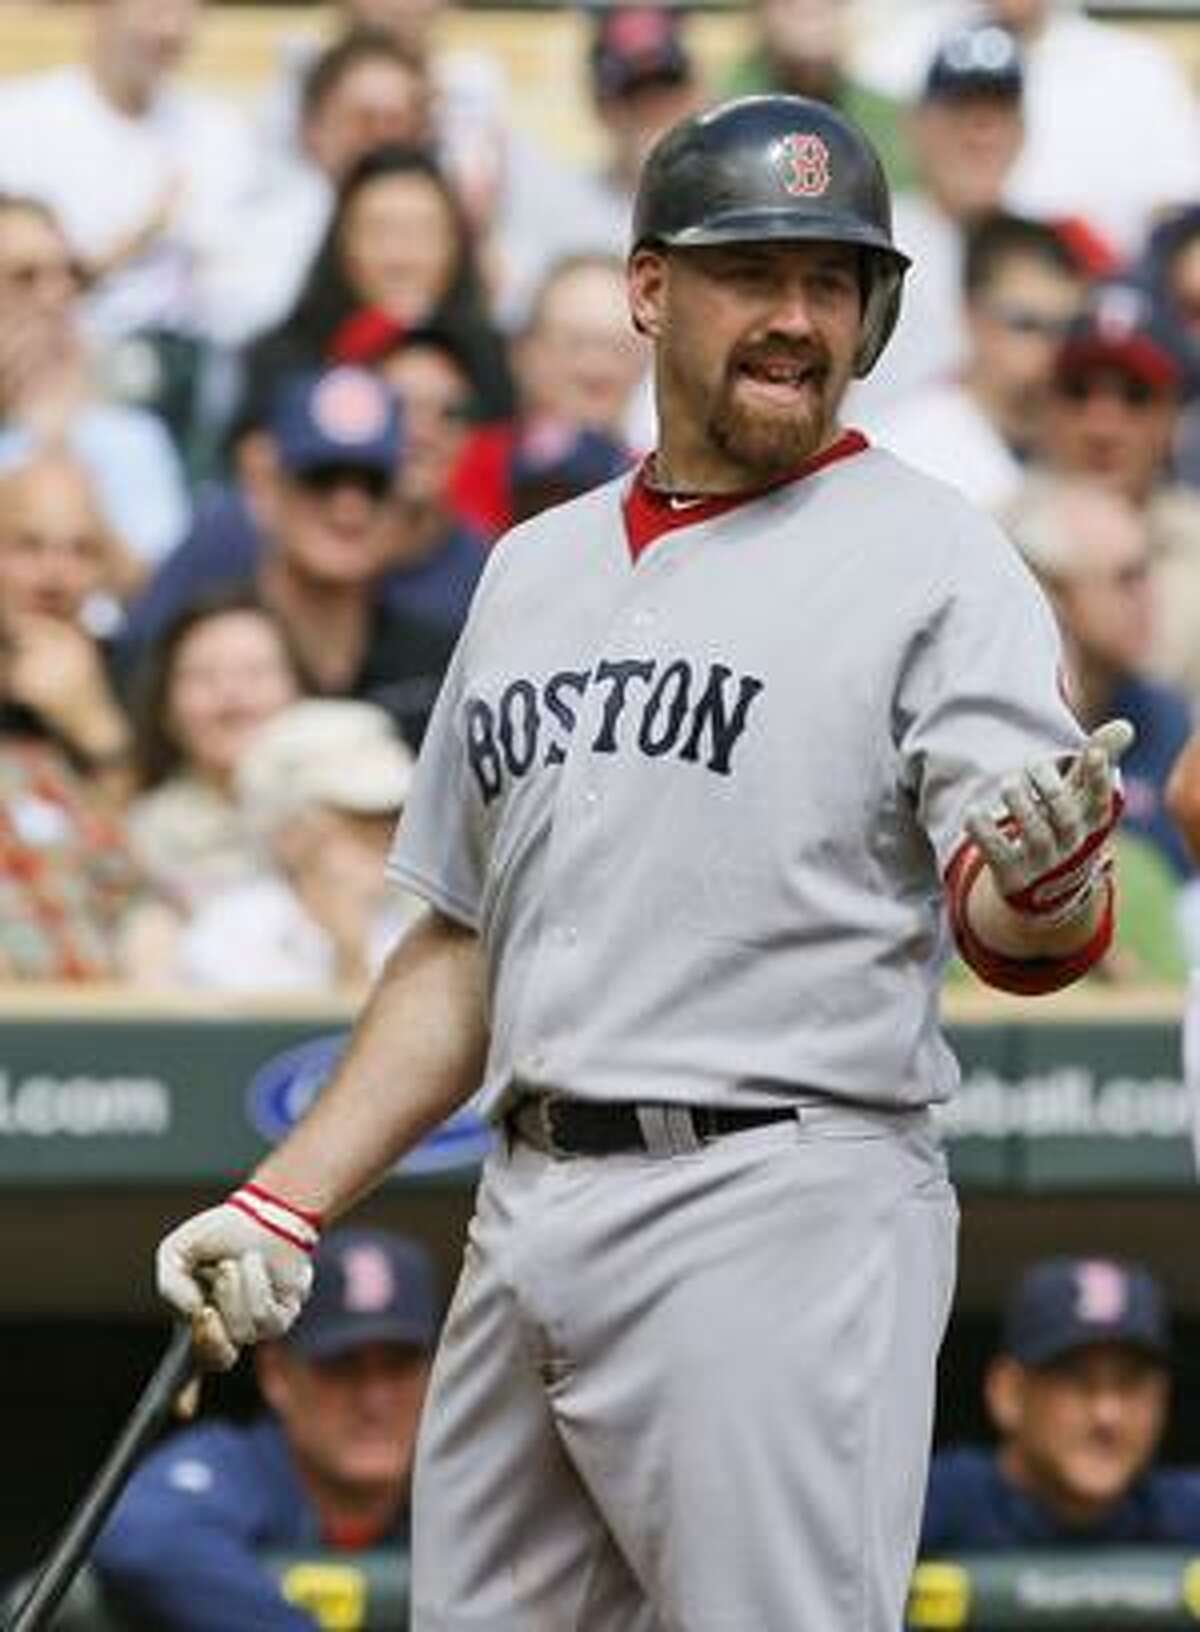 AP Boston Red Sox infielder Kevin Youkilis disagrees after he is called out on strikes against Minnesota Twins pitcher Francisco Liriano during the first inning of Thursday's game in Minneapolis. The Twins beat the Red Sox 8-0.